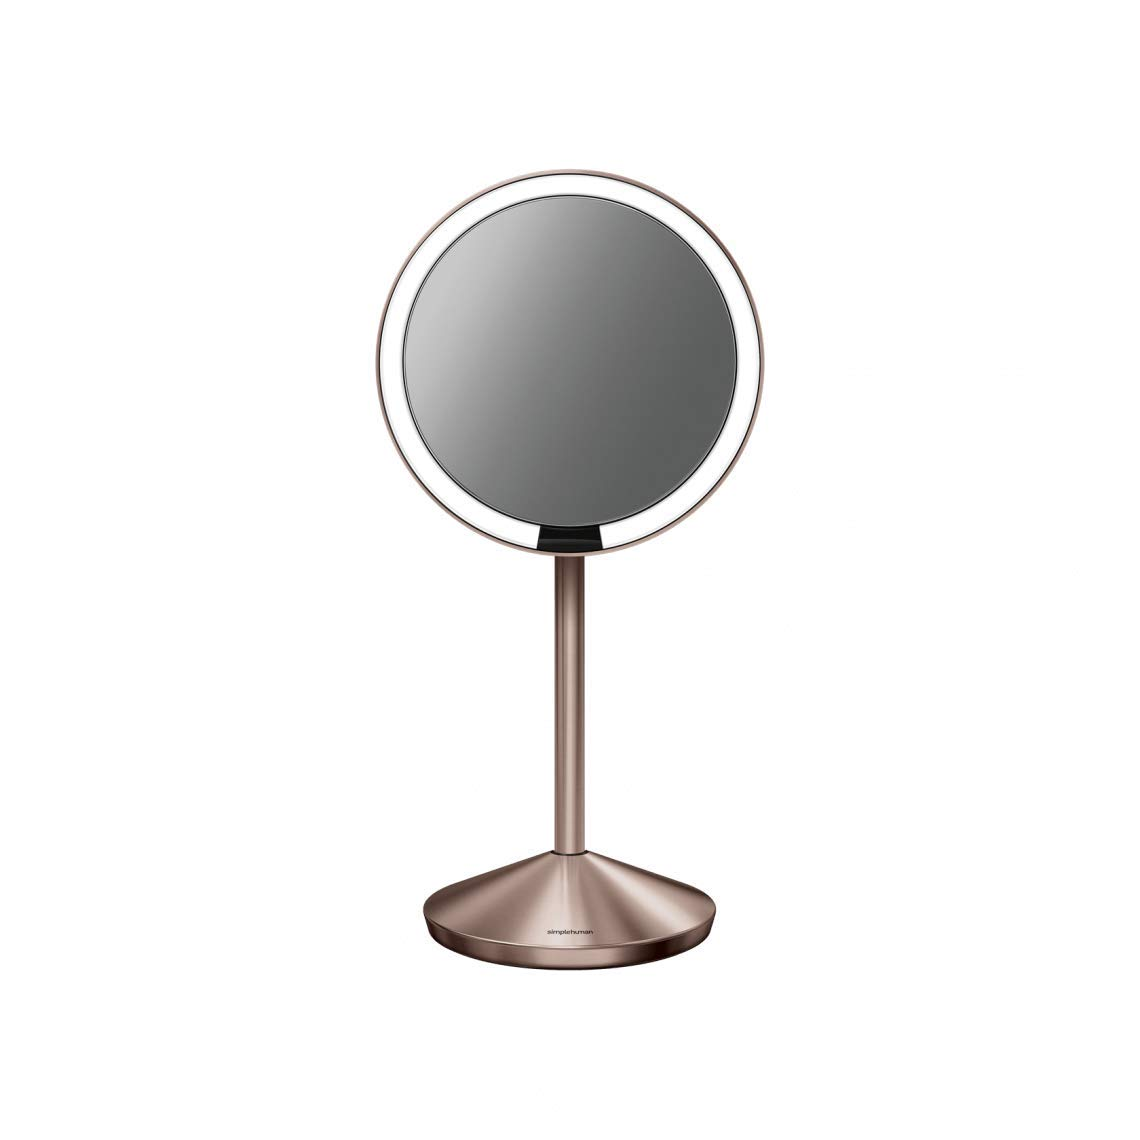 "simplehuman Mini Sensor Lighted Makeup Travel Mirror 5"" Round, 10x Magnification, Rose Gold Stainless Steel, Rechargeable"